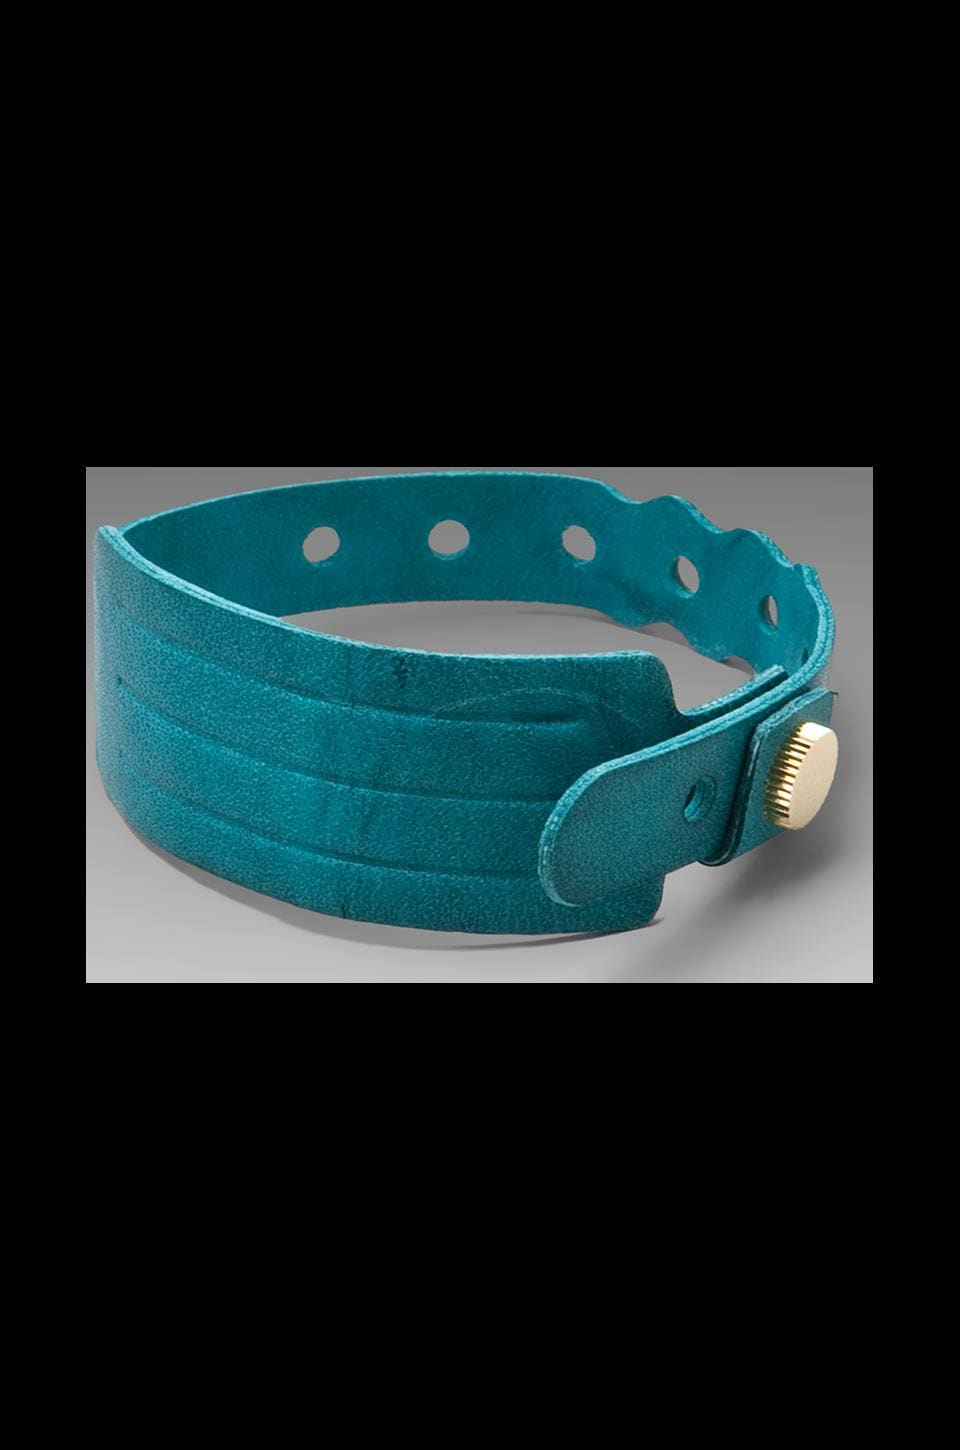 Cast of Vices 'Coming or Going' Medical ID Bracelet in Teal